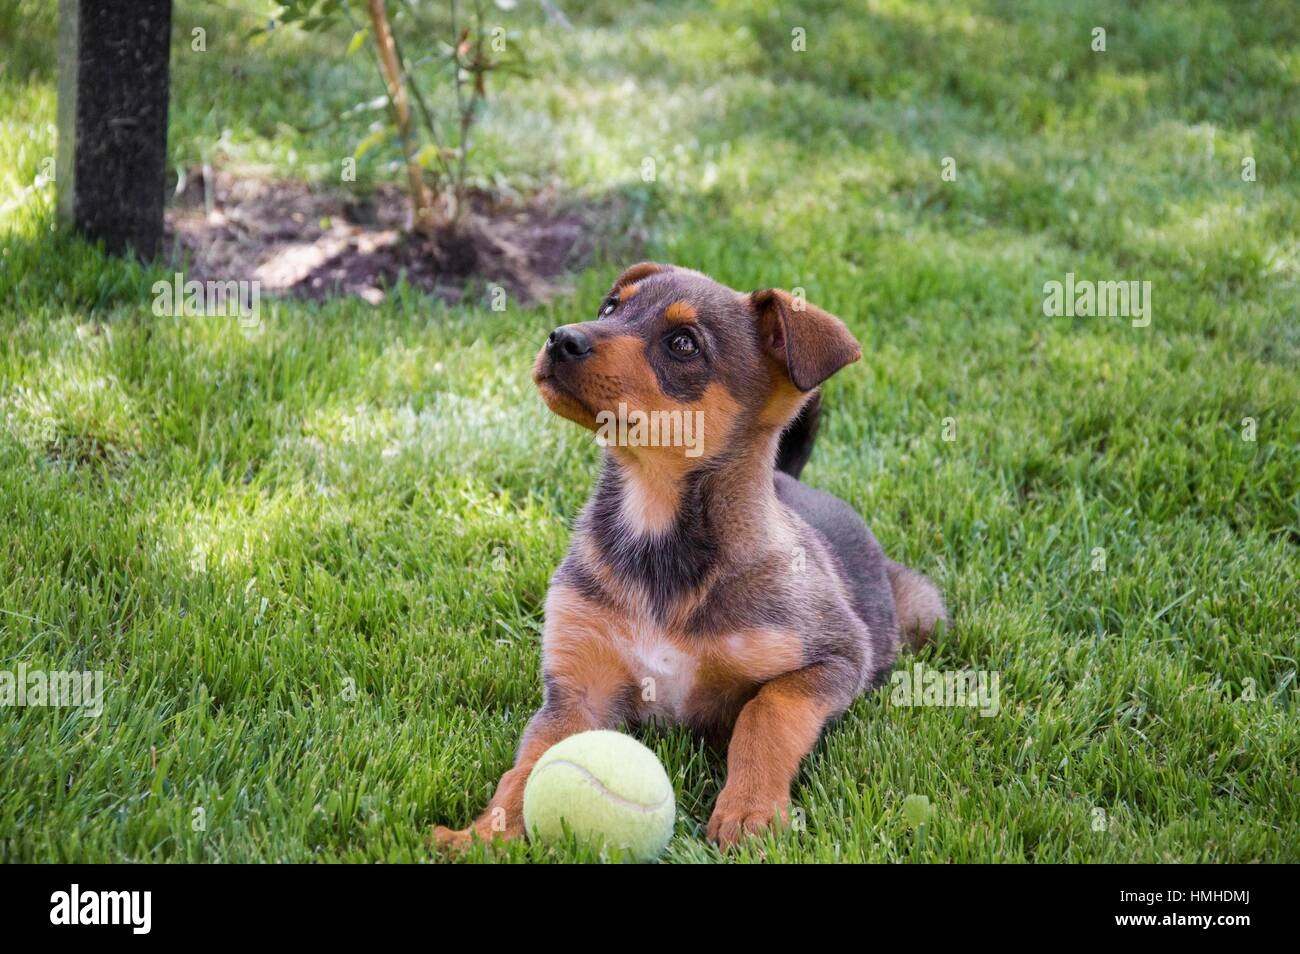 Cute puppy waiting to play Stock Photo